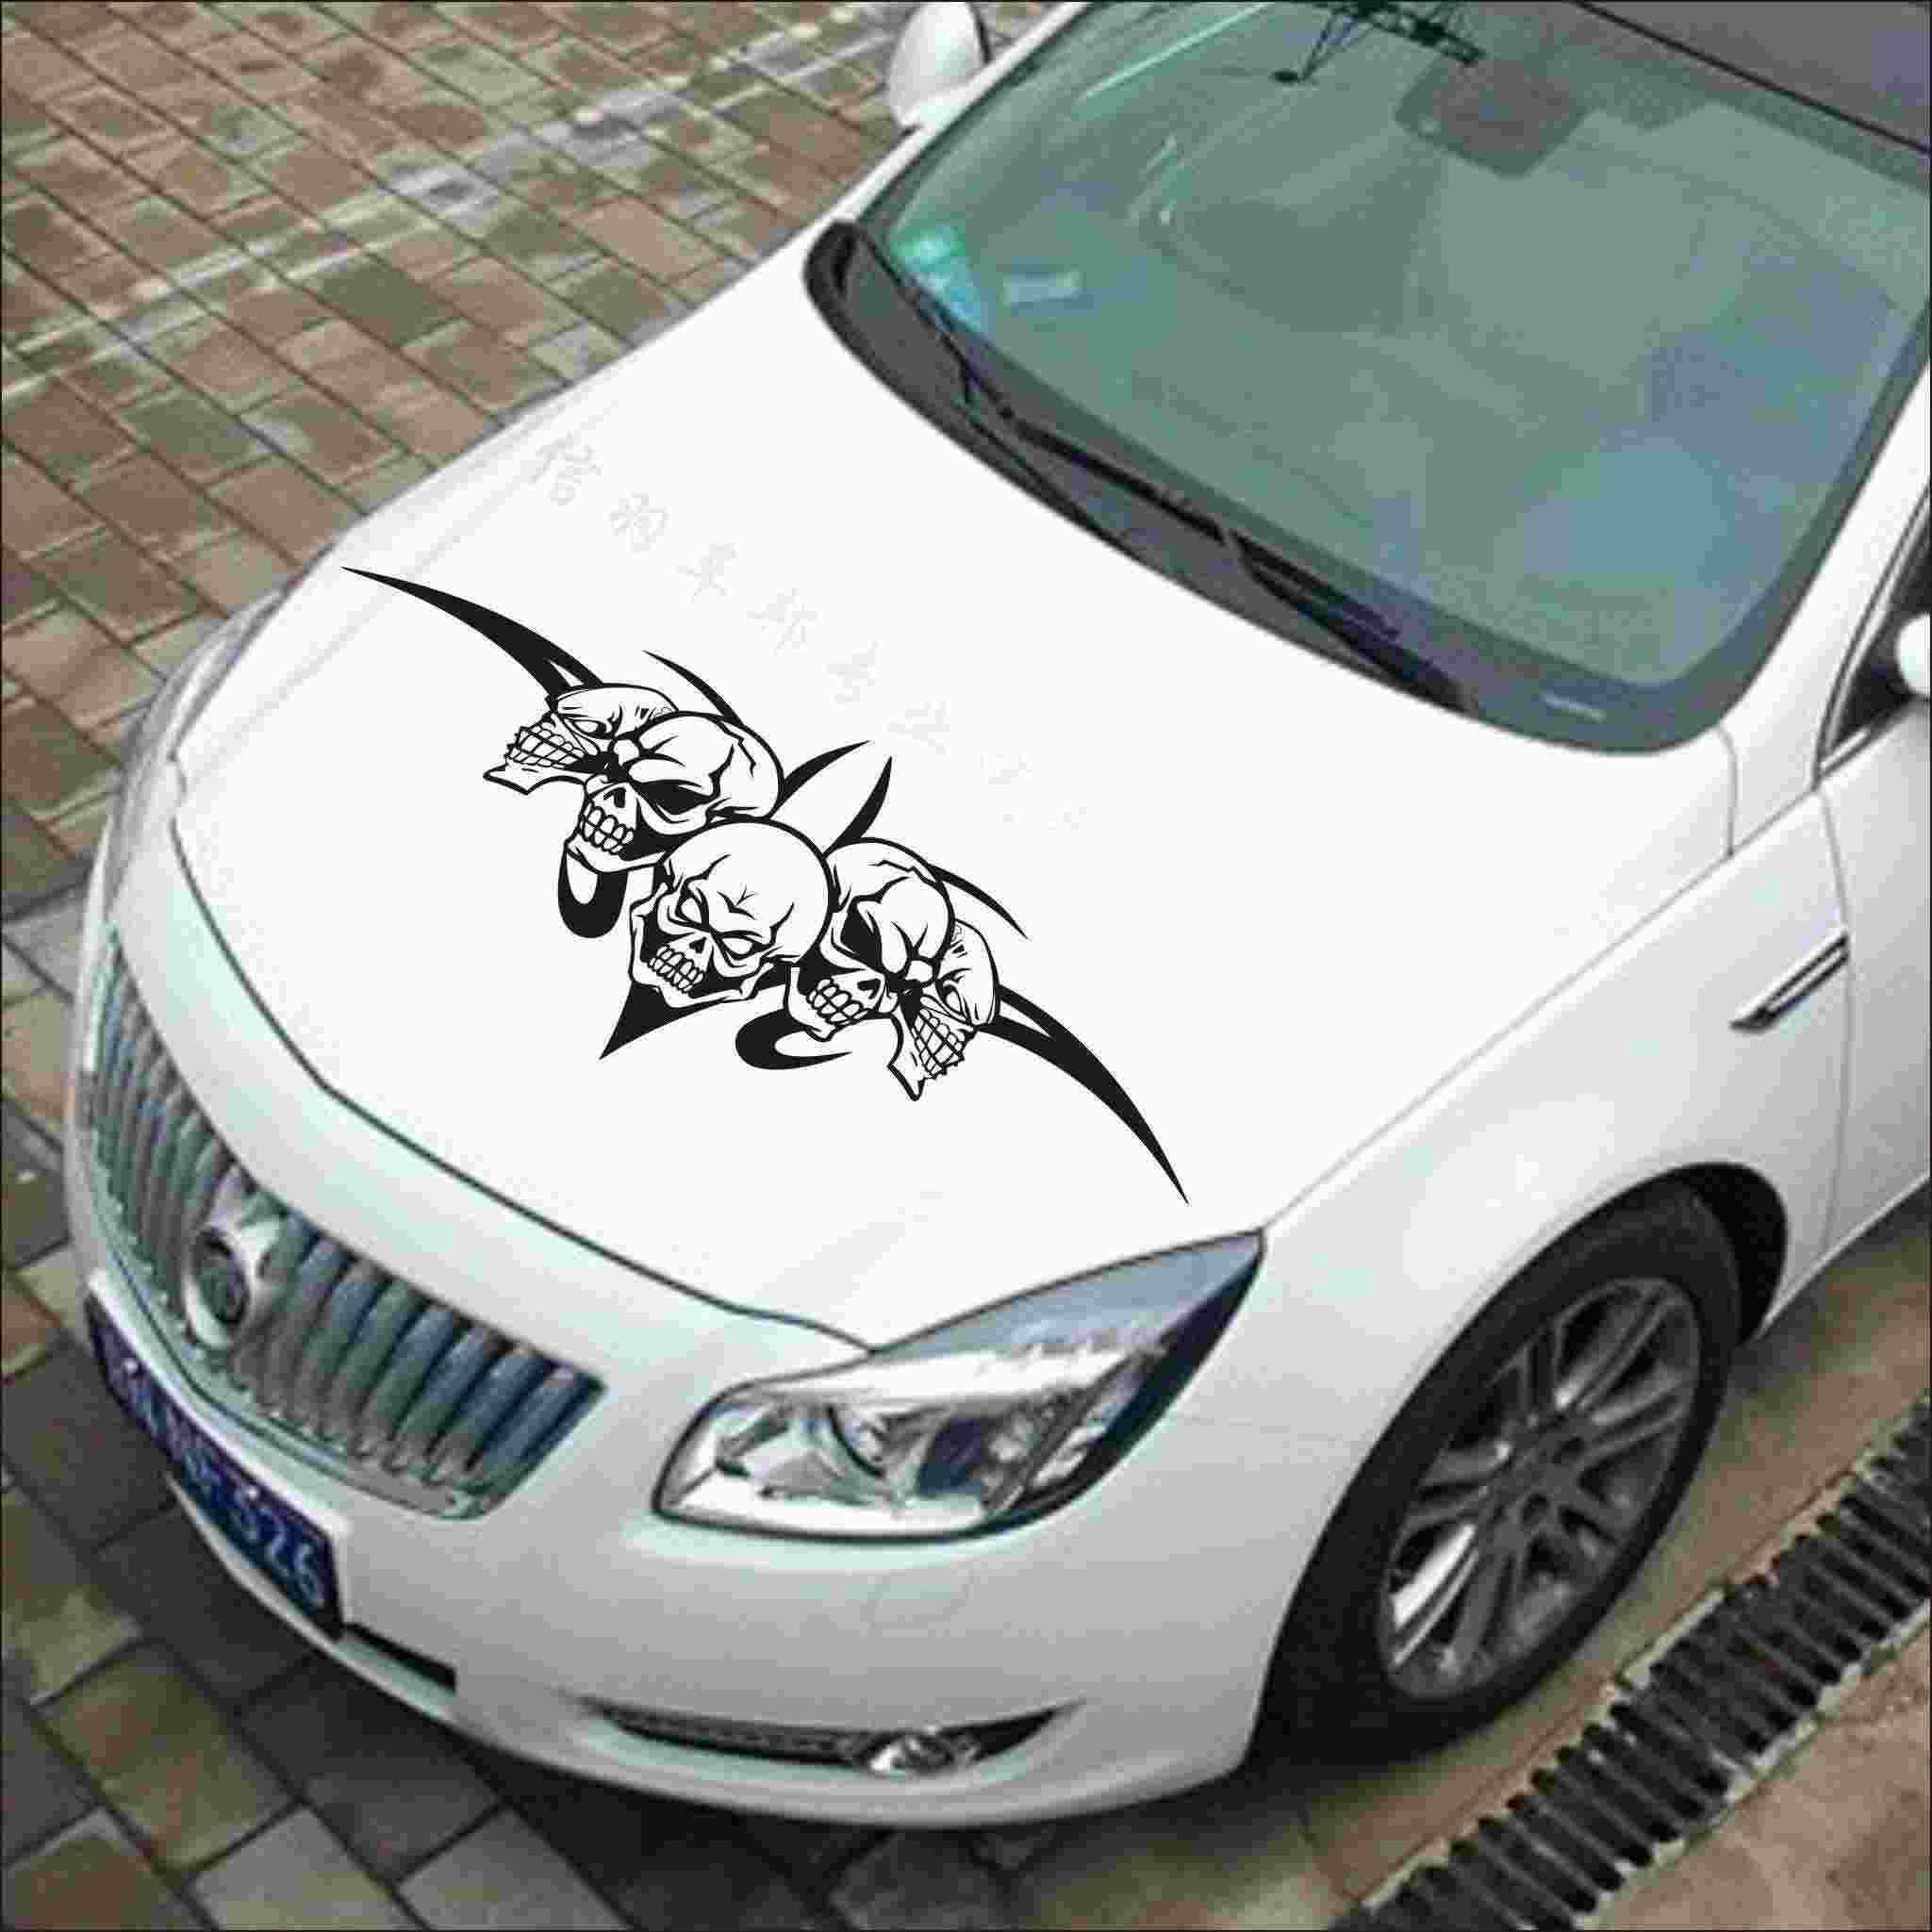 Skull bonnet sticker reflective stickers personalized car stickers modified hood cover car stickers national auto parts oem auto parts from xwt5240